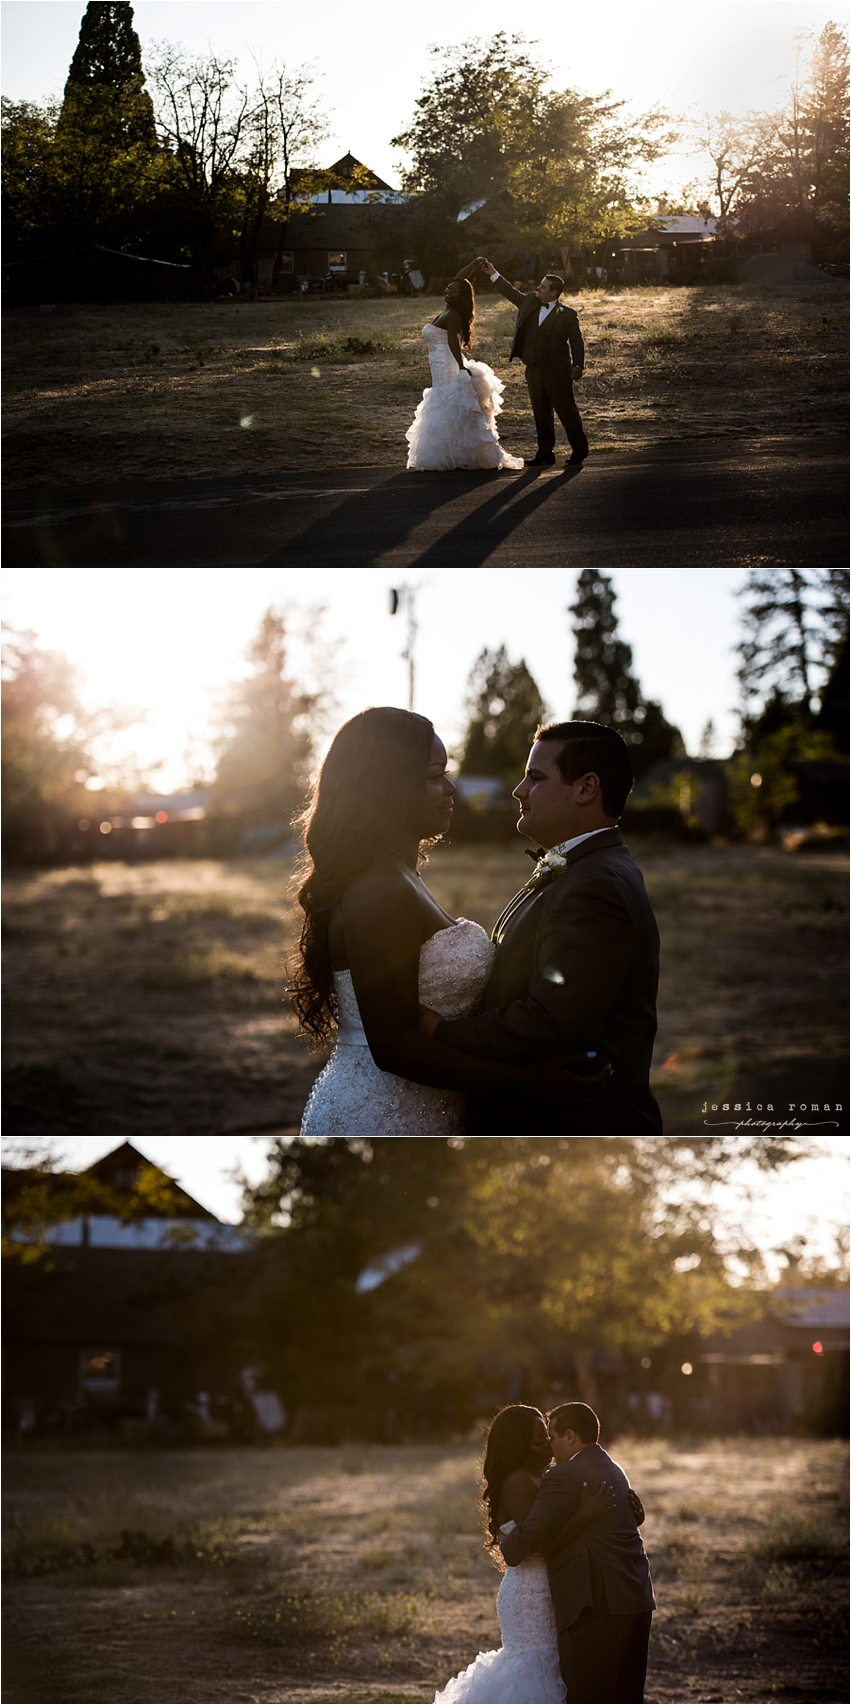 Jessica Roman Photography - Addy & Dominick wedding at Forest House Lodge